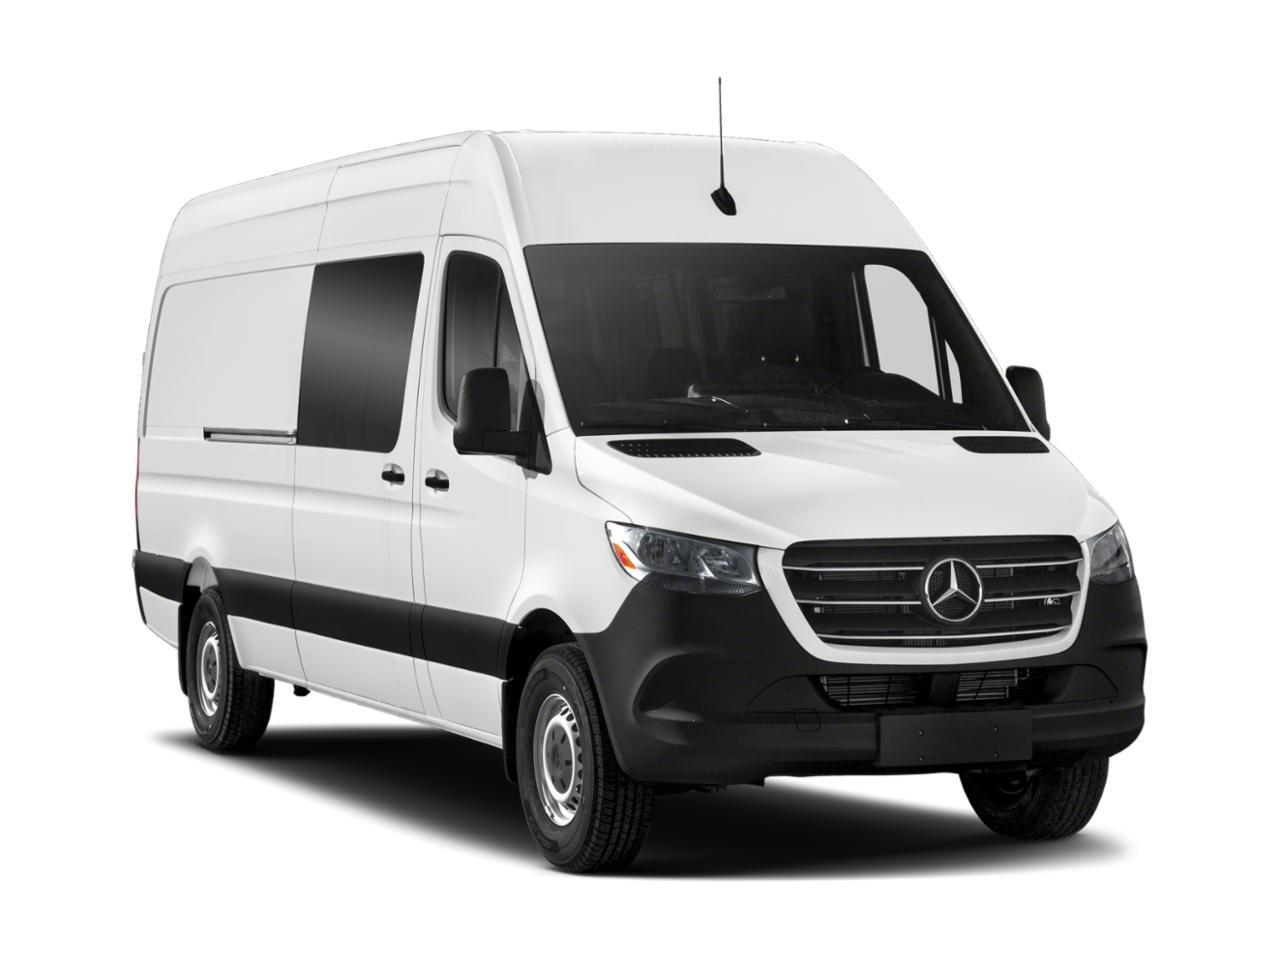 2021 Mercedes-Benz Sprinter 2500 Crew 170 WB Atlanta GA